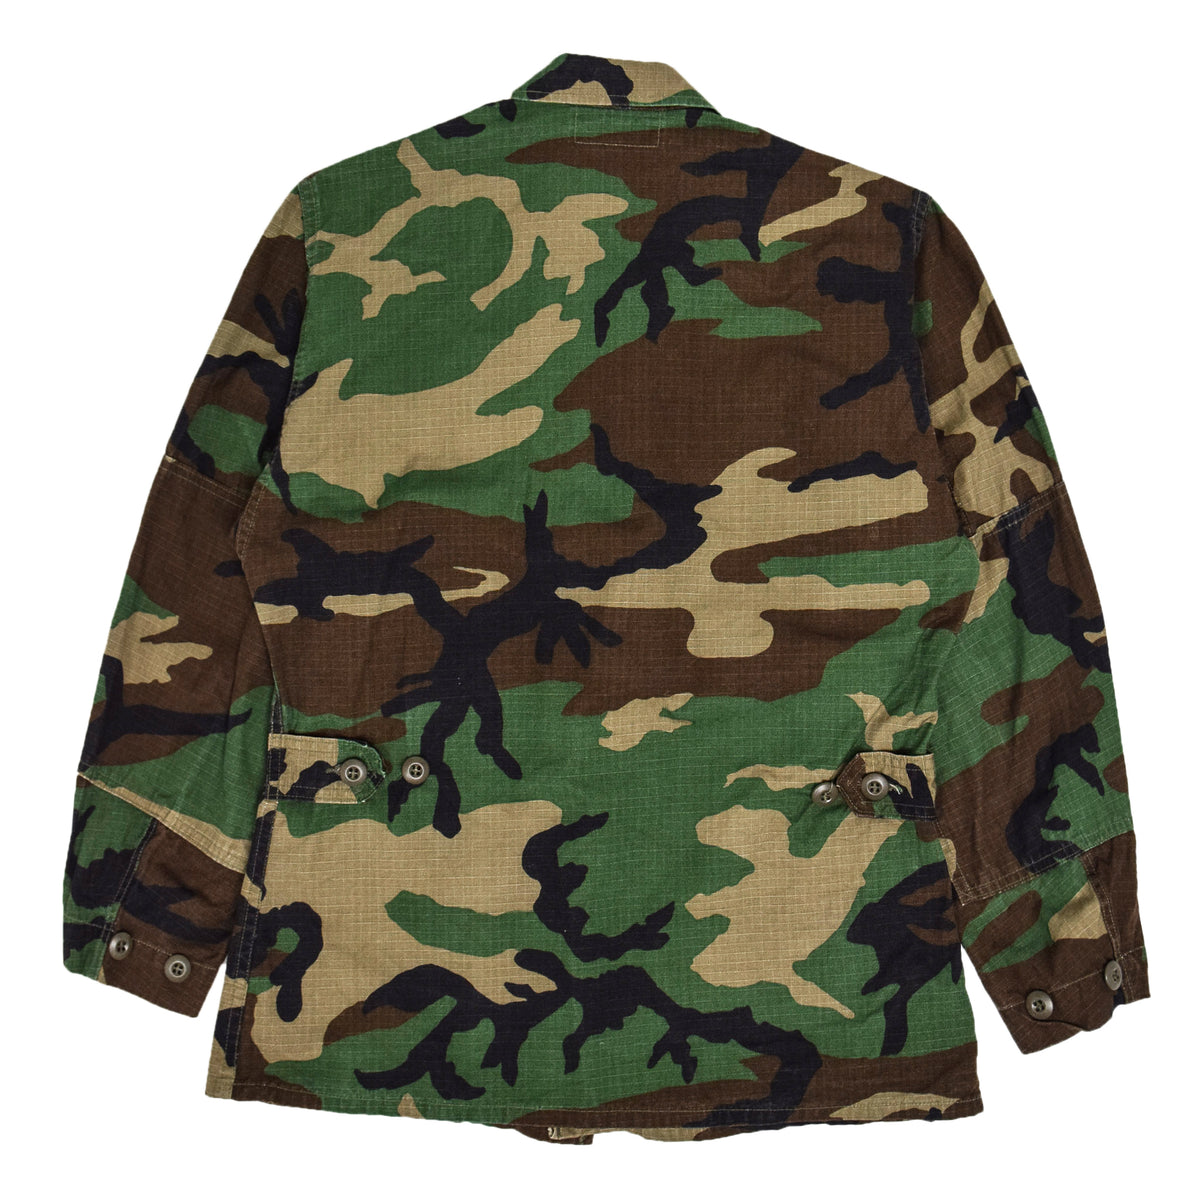 Vintage 90s US Army Hot Weather Woodland Camo Ripstop Combat Coat S Reg back